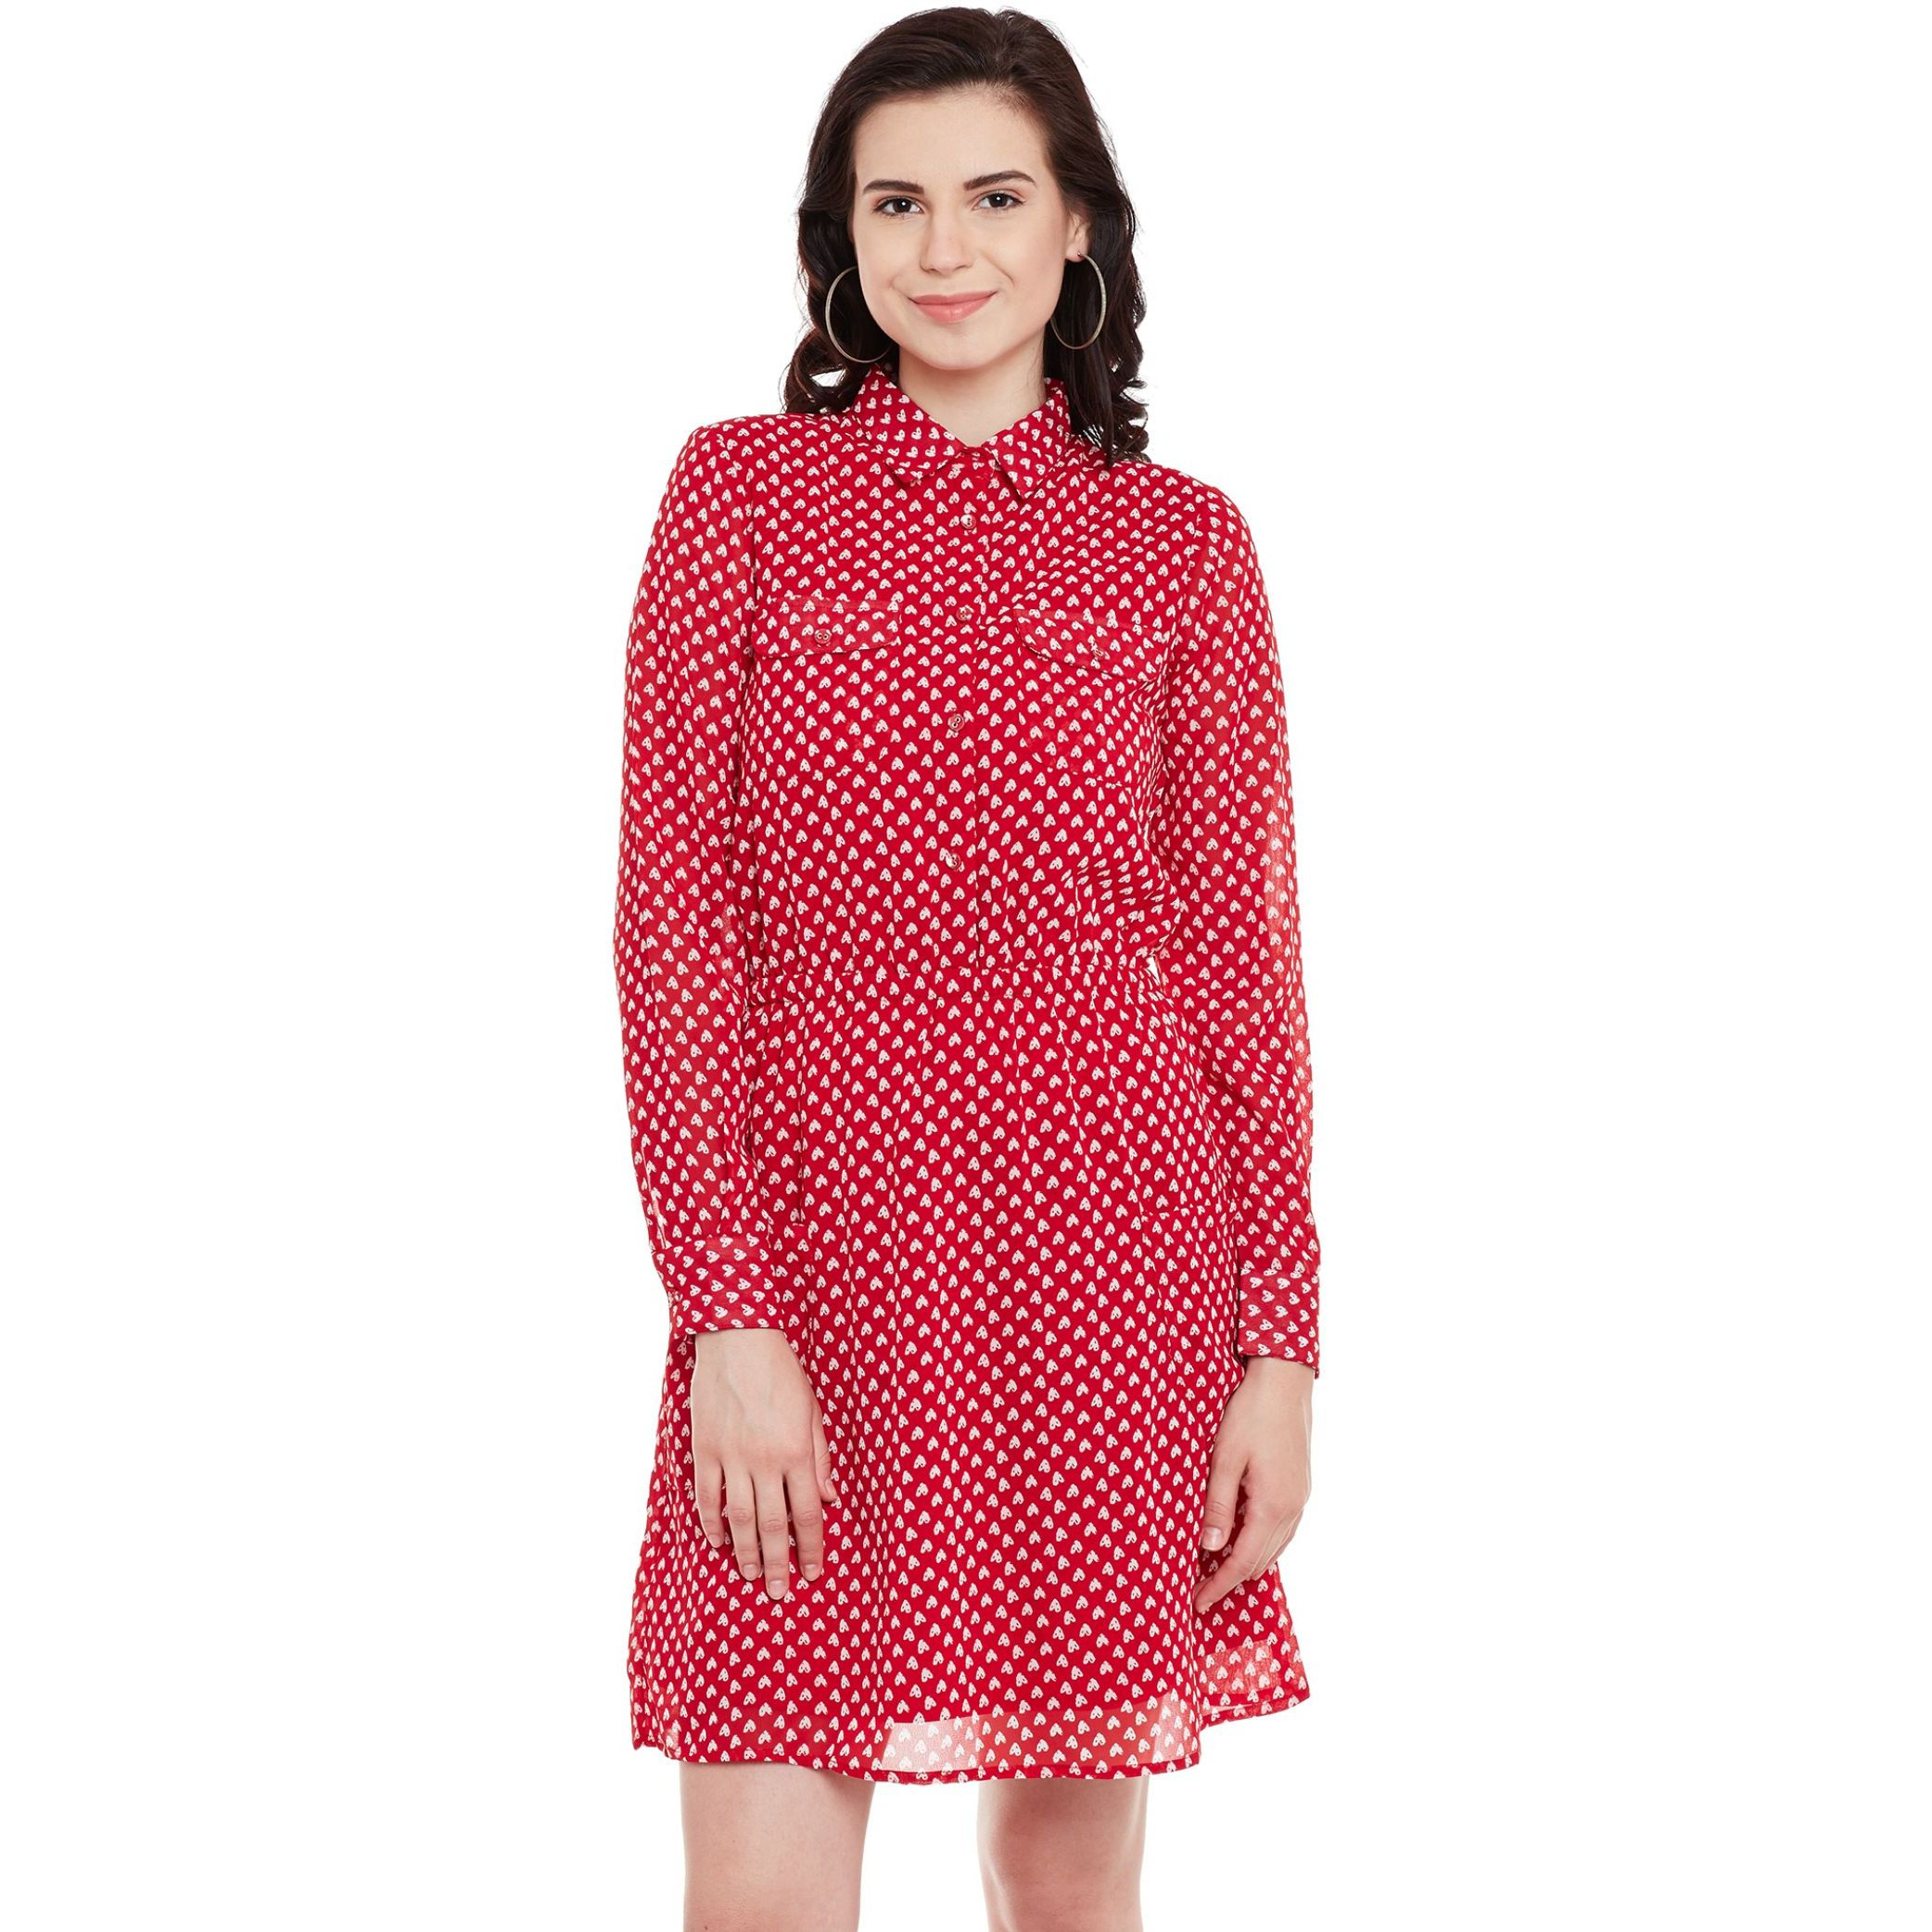 Printed Red Georgette Shirt Dress With Pockets And Gathered Waist (Size:XL)